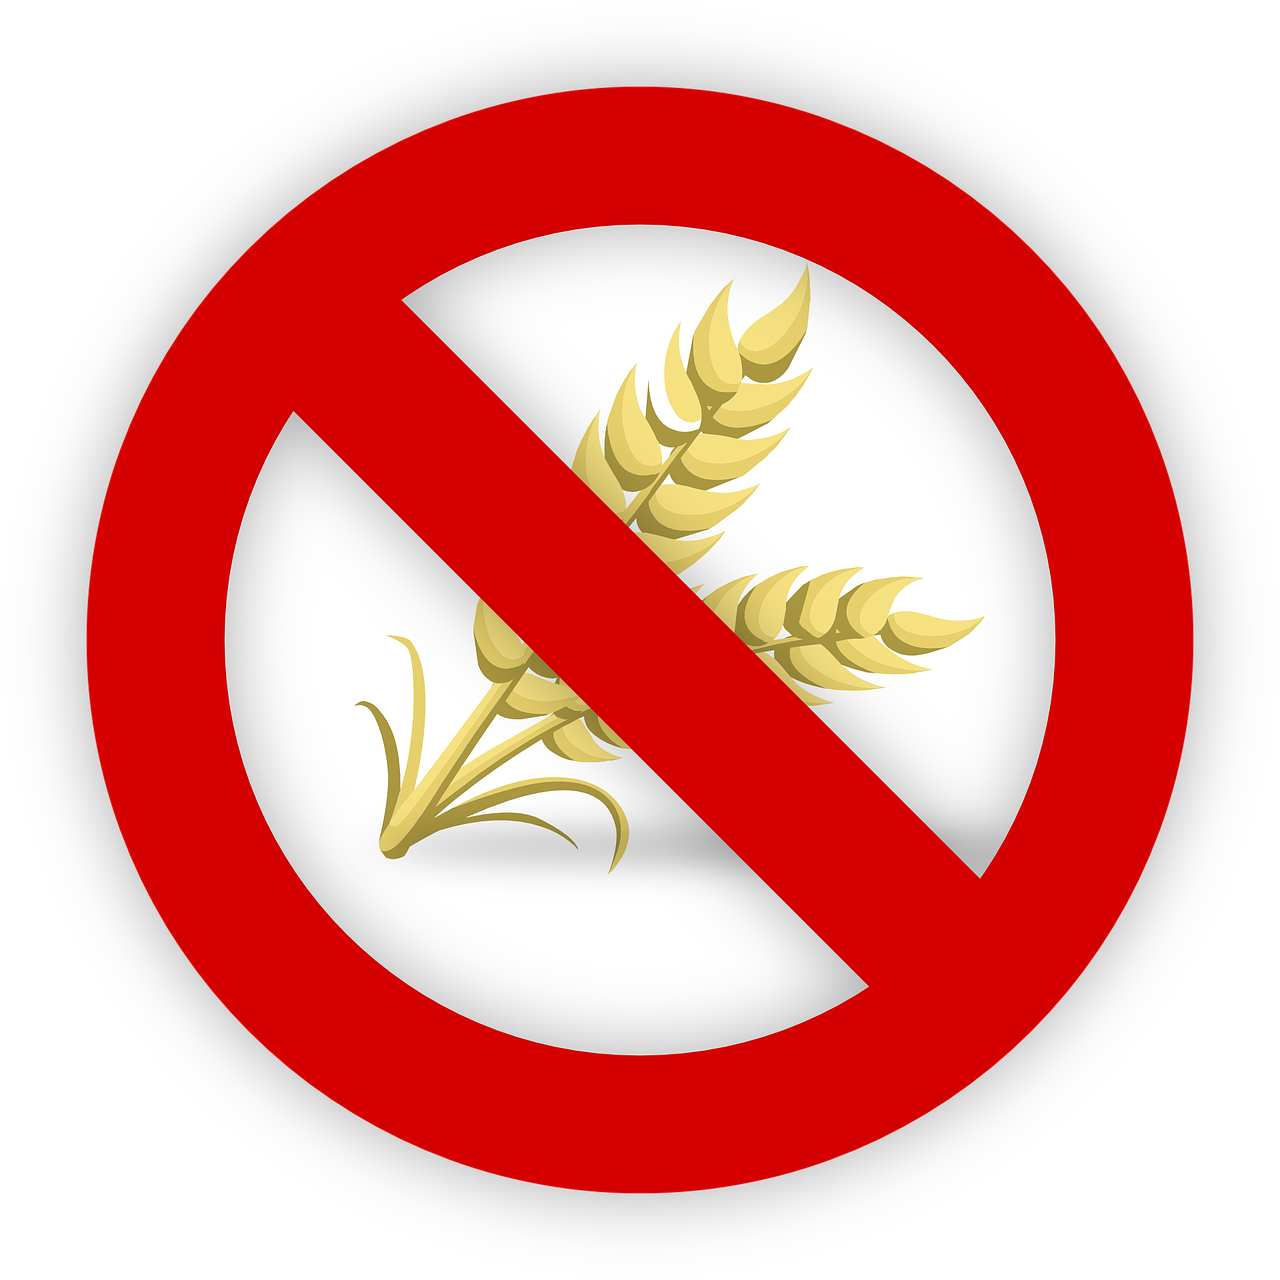 wheat-995055_1280.png